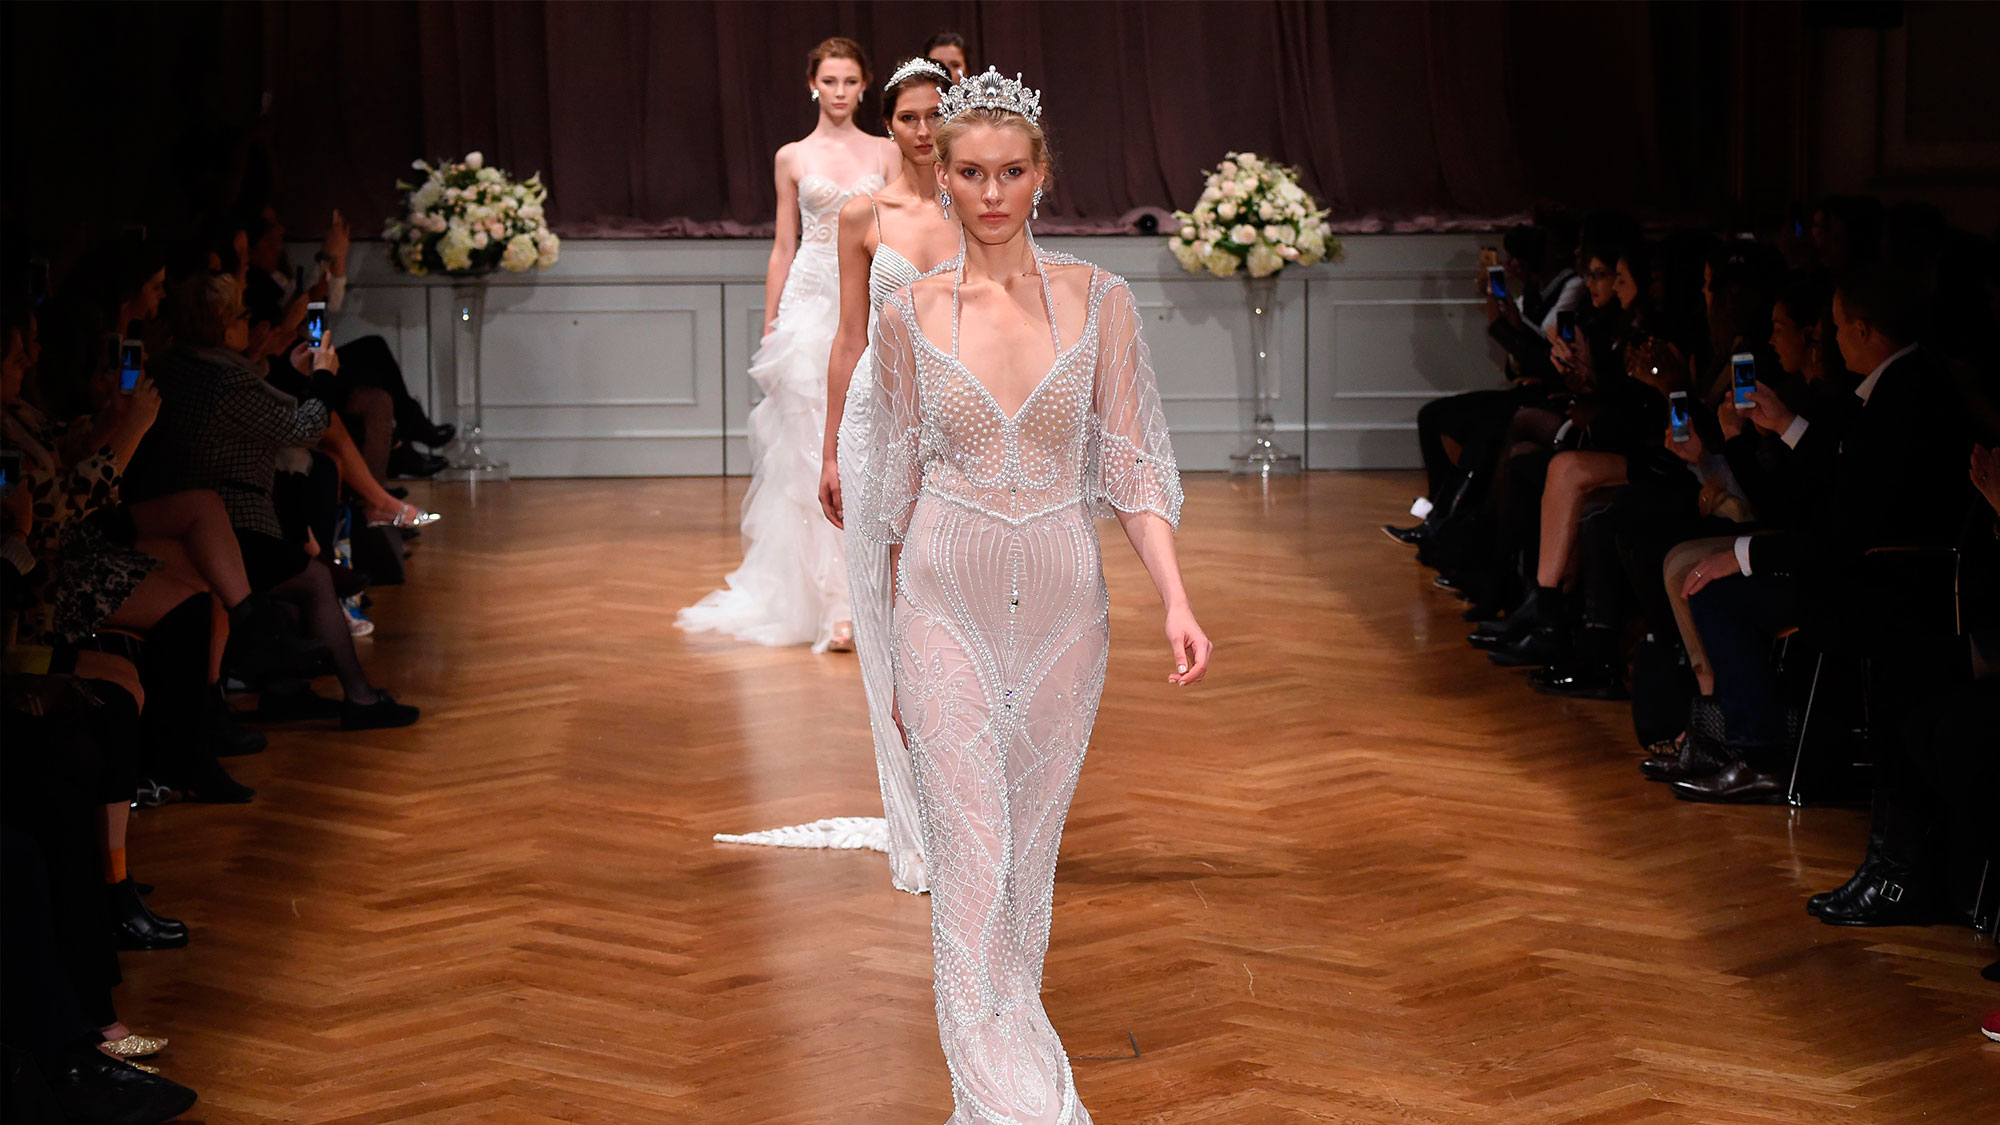 Wedding Dresses from bespoke to highstreet: how to find the perfect ...